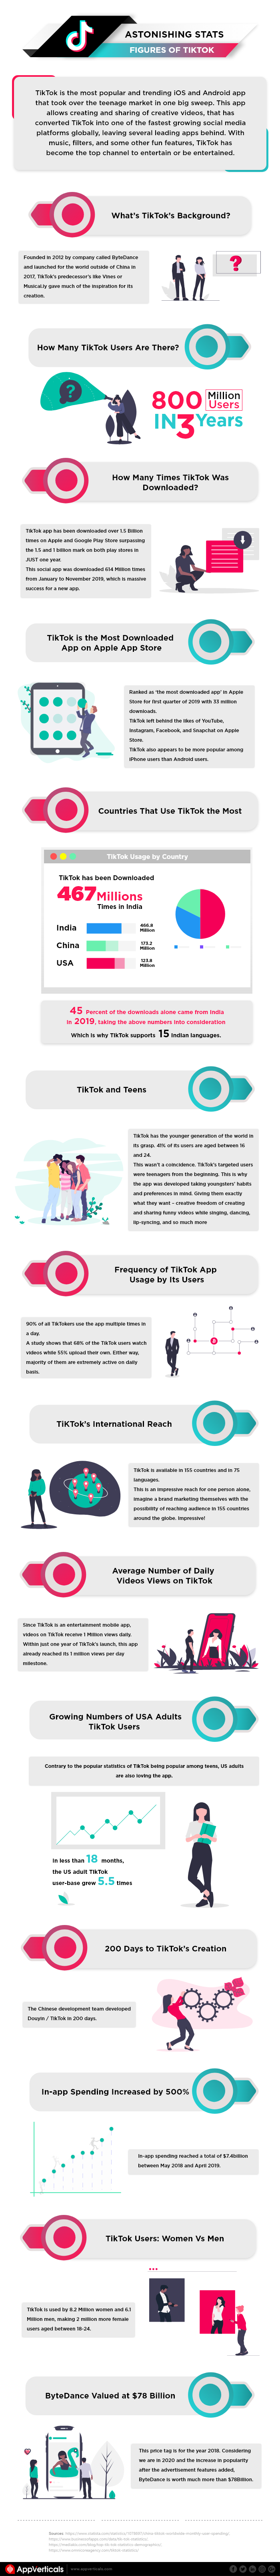 TikTok: Astonishing Statistics and Figures